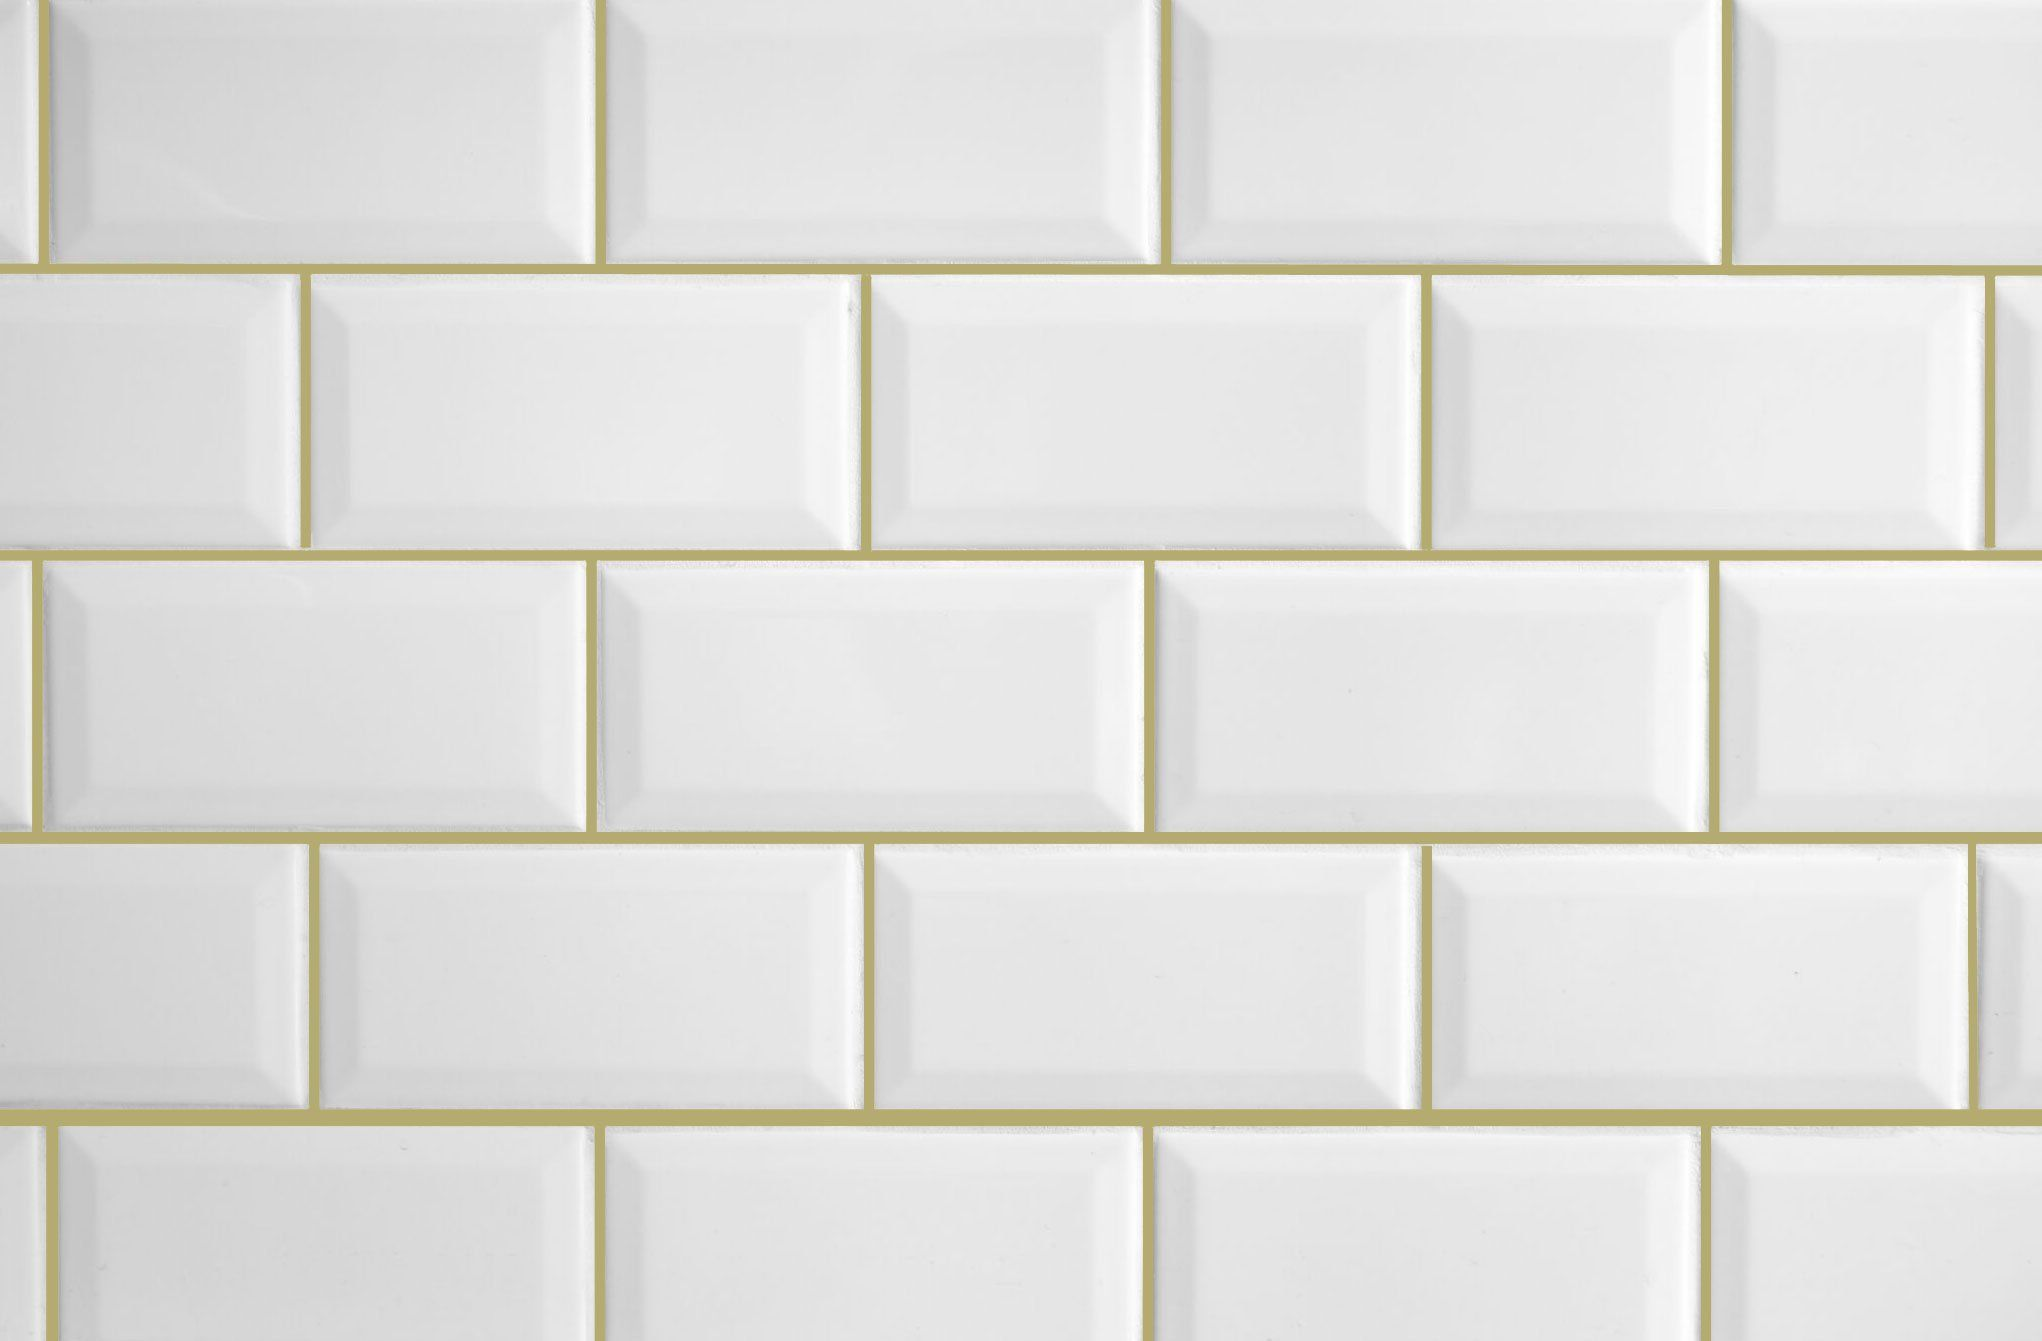 Grout Pen Large Beige Ideal To Restore The Look Of Tile Grout Lines Be Sure To Check Out This Awesome Product This Is An Affi Grout Pen Tile Grout Tiles